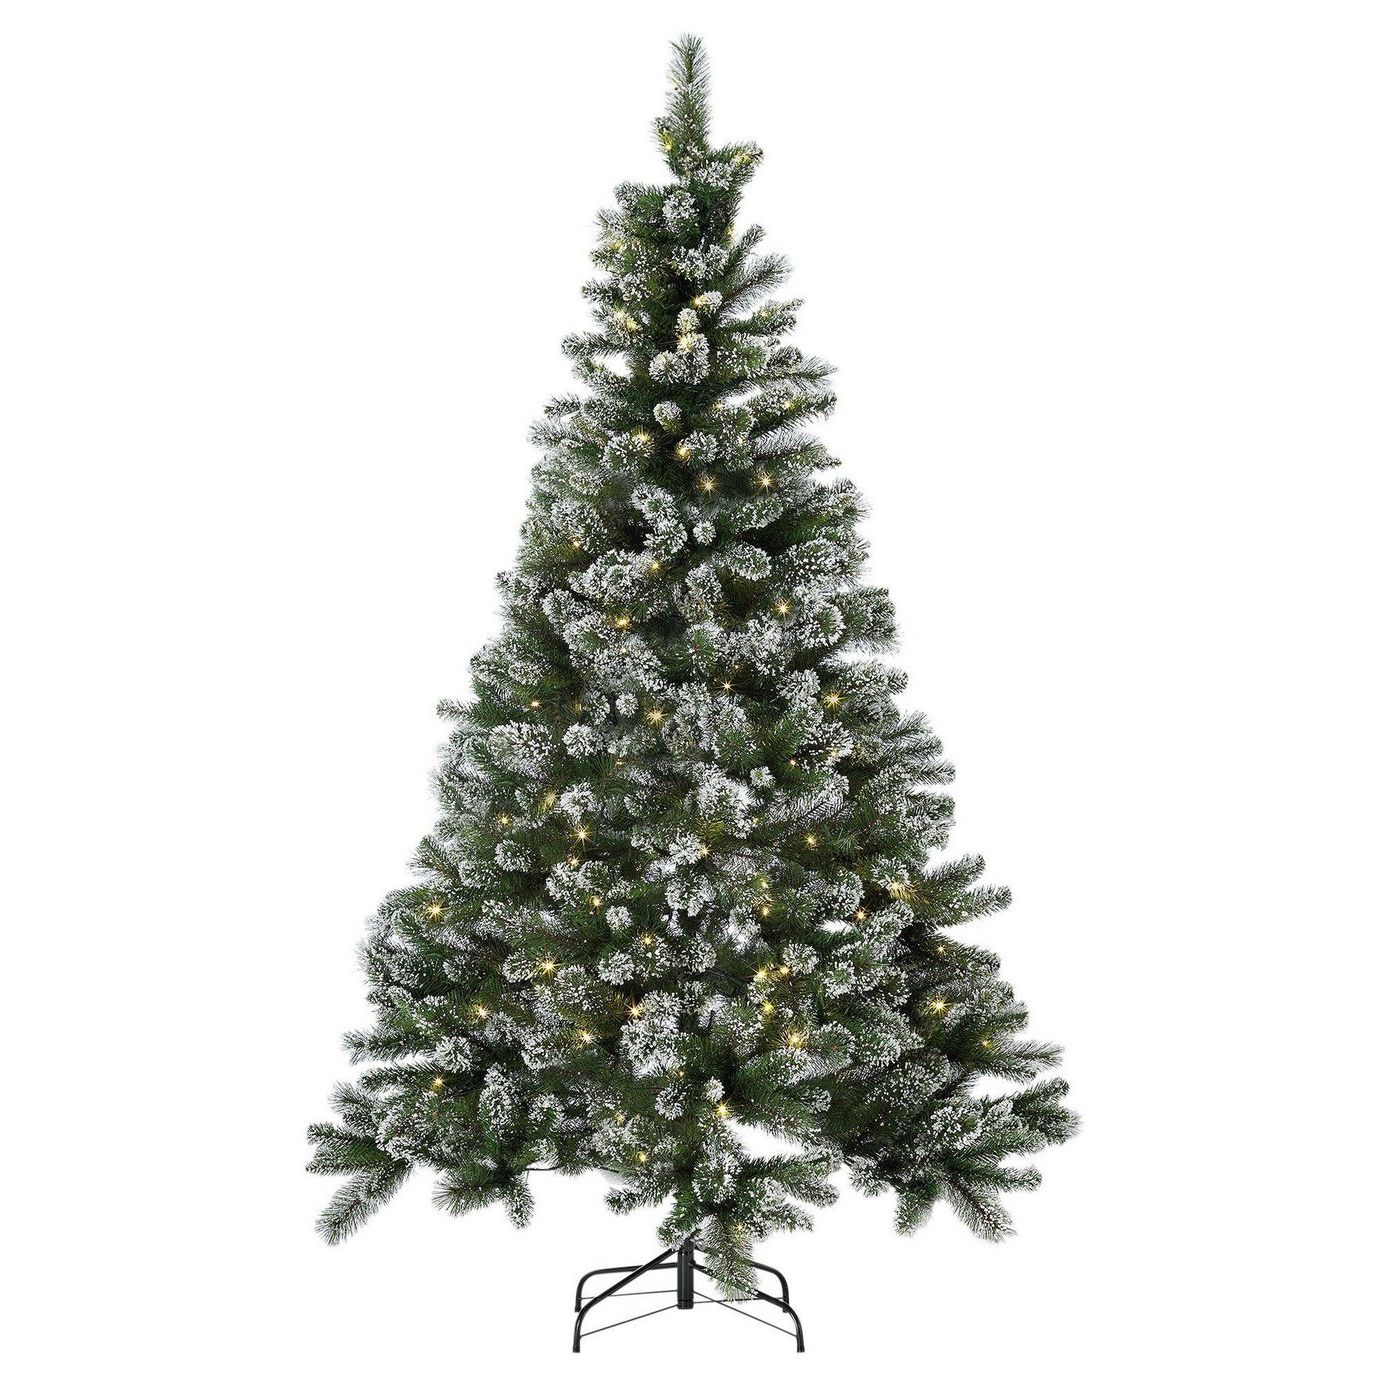 Argos Home 7ft Pre-lit Snow Tipped Christmas Tree